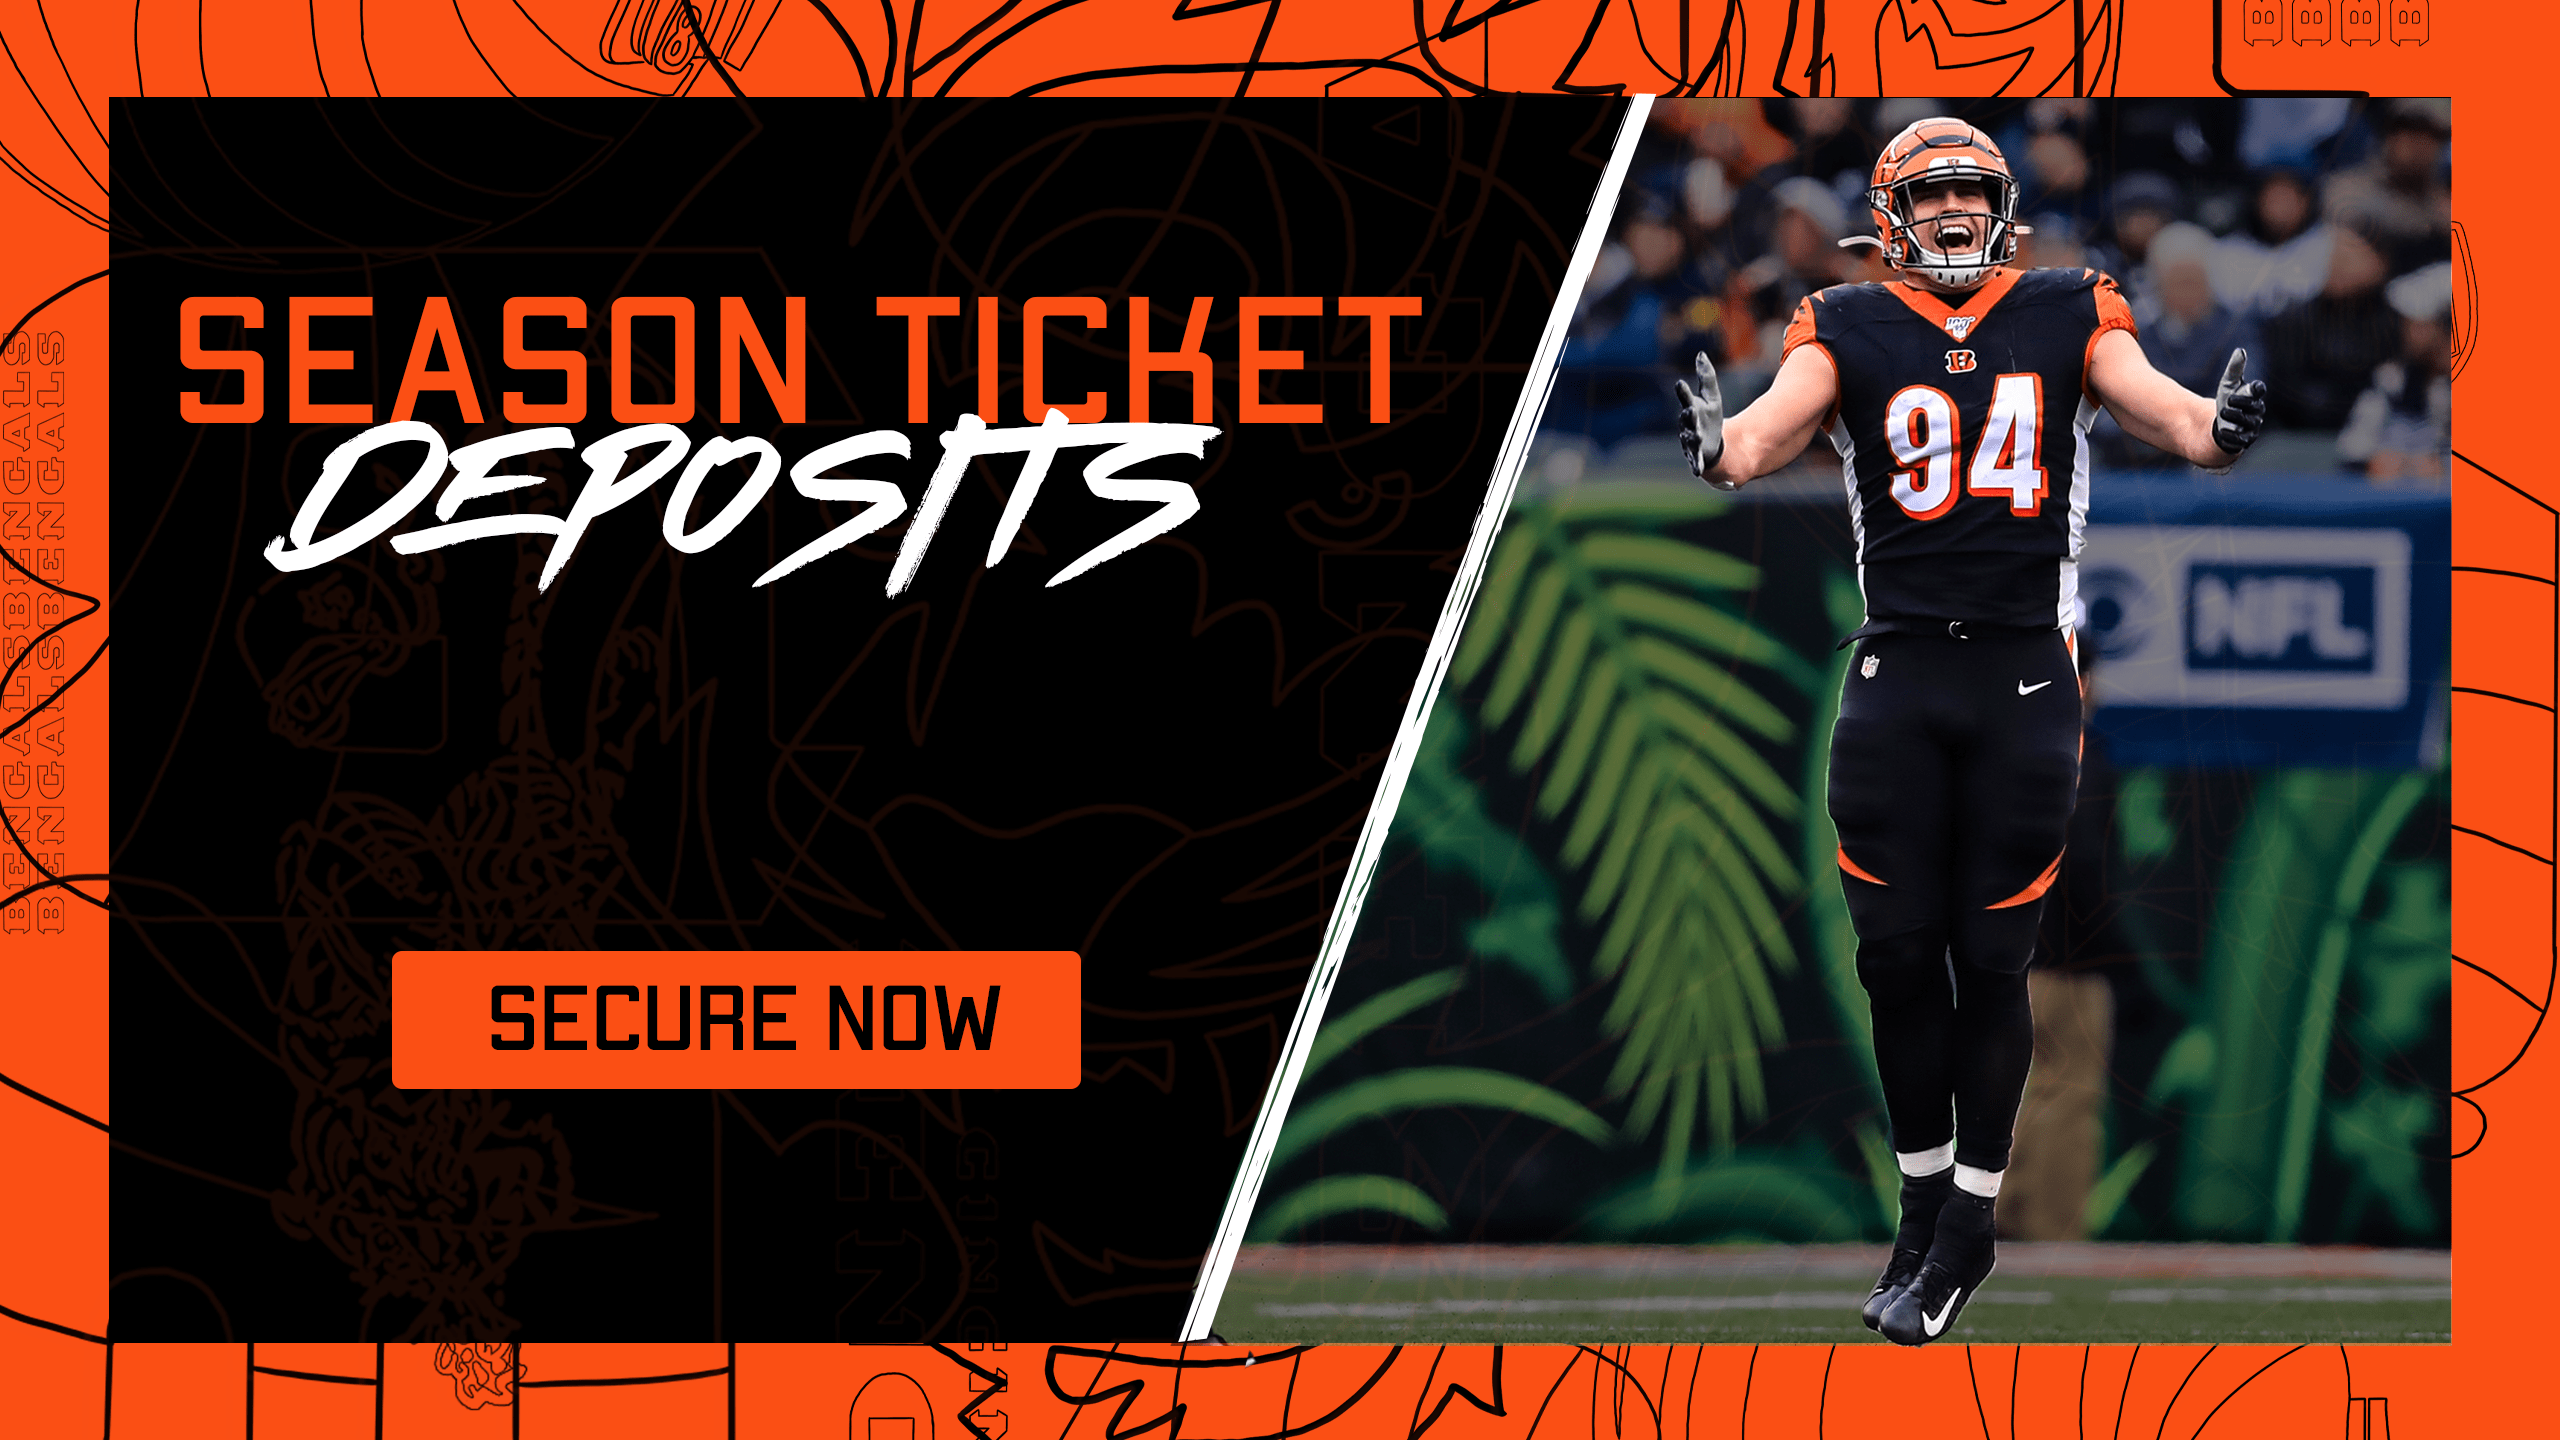 Season Ticket Deposits